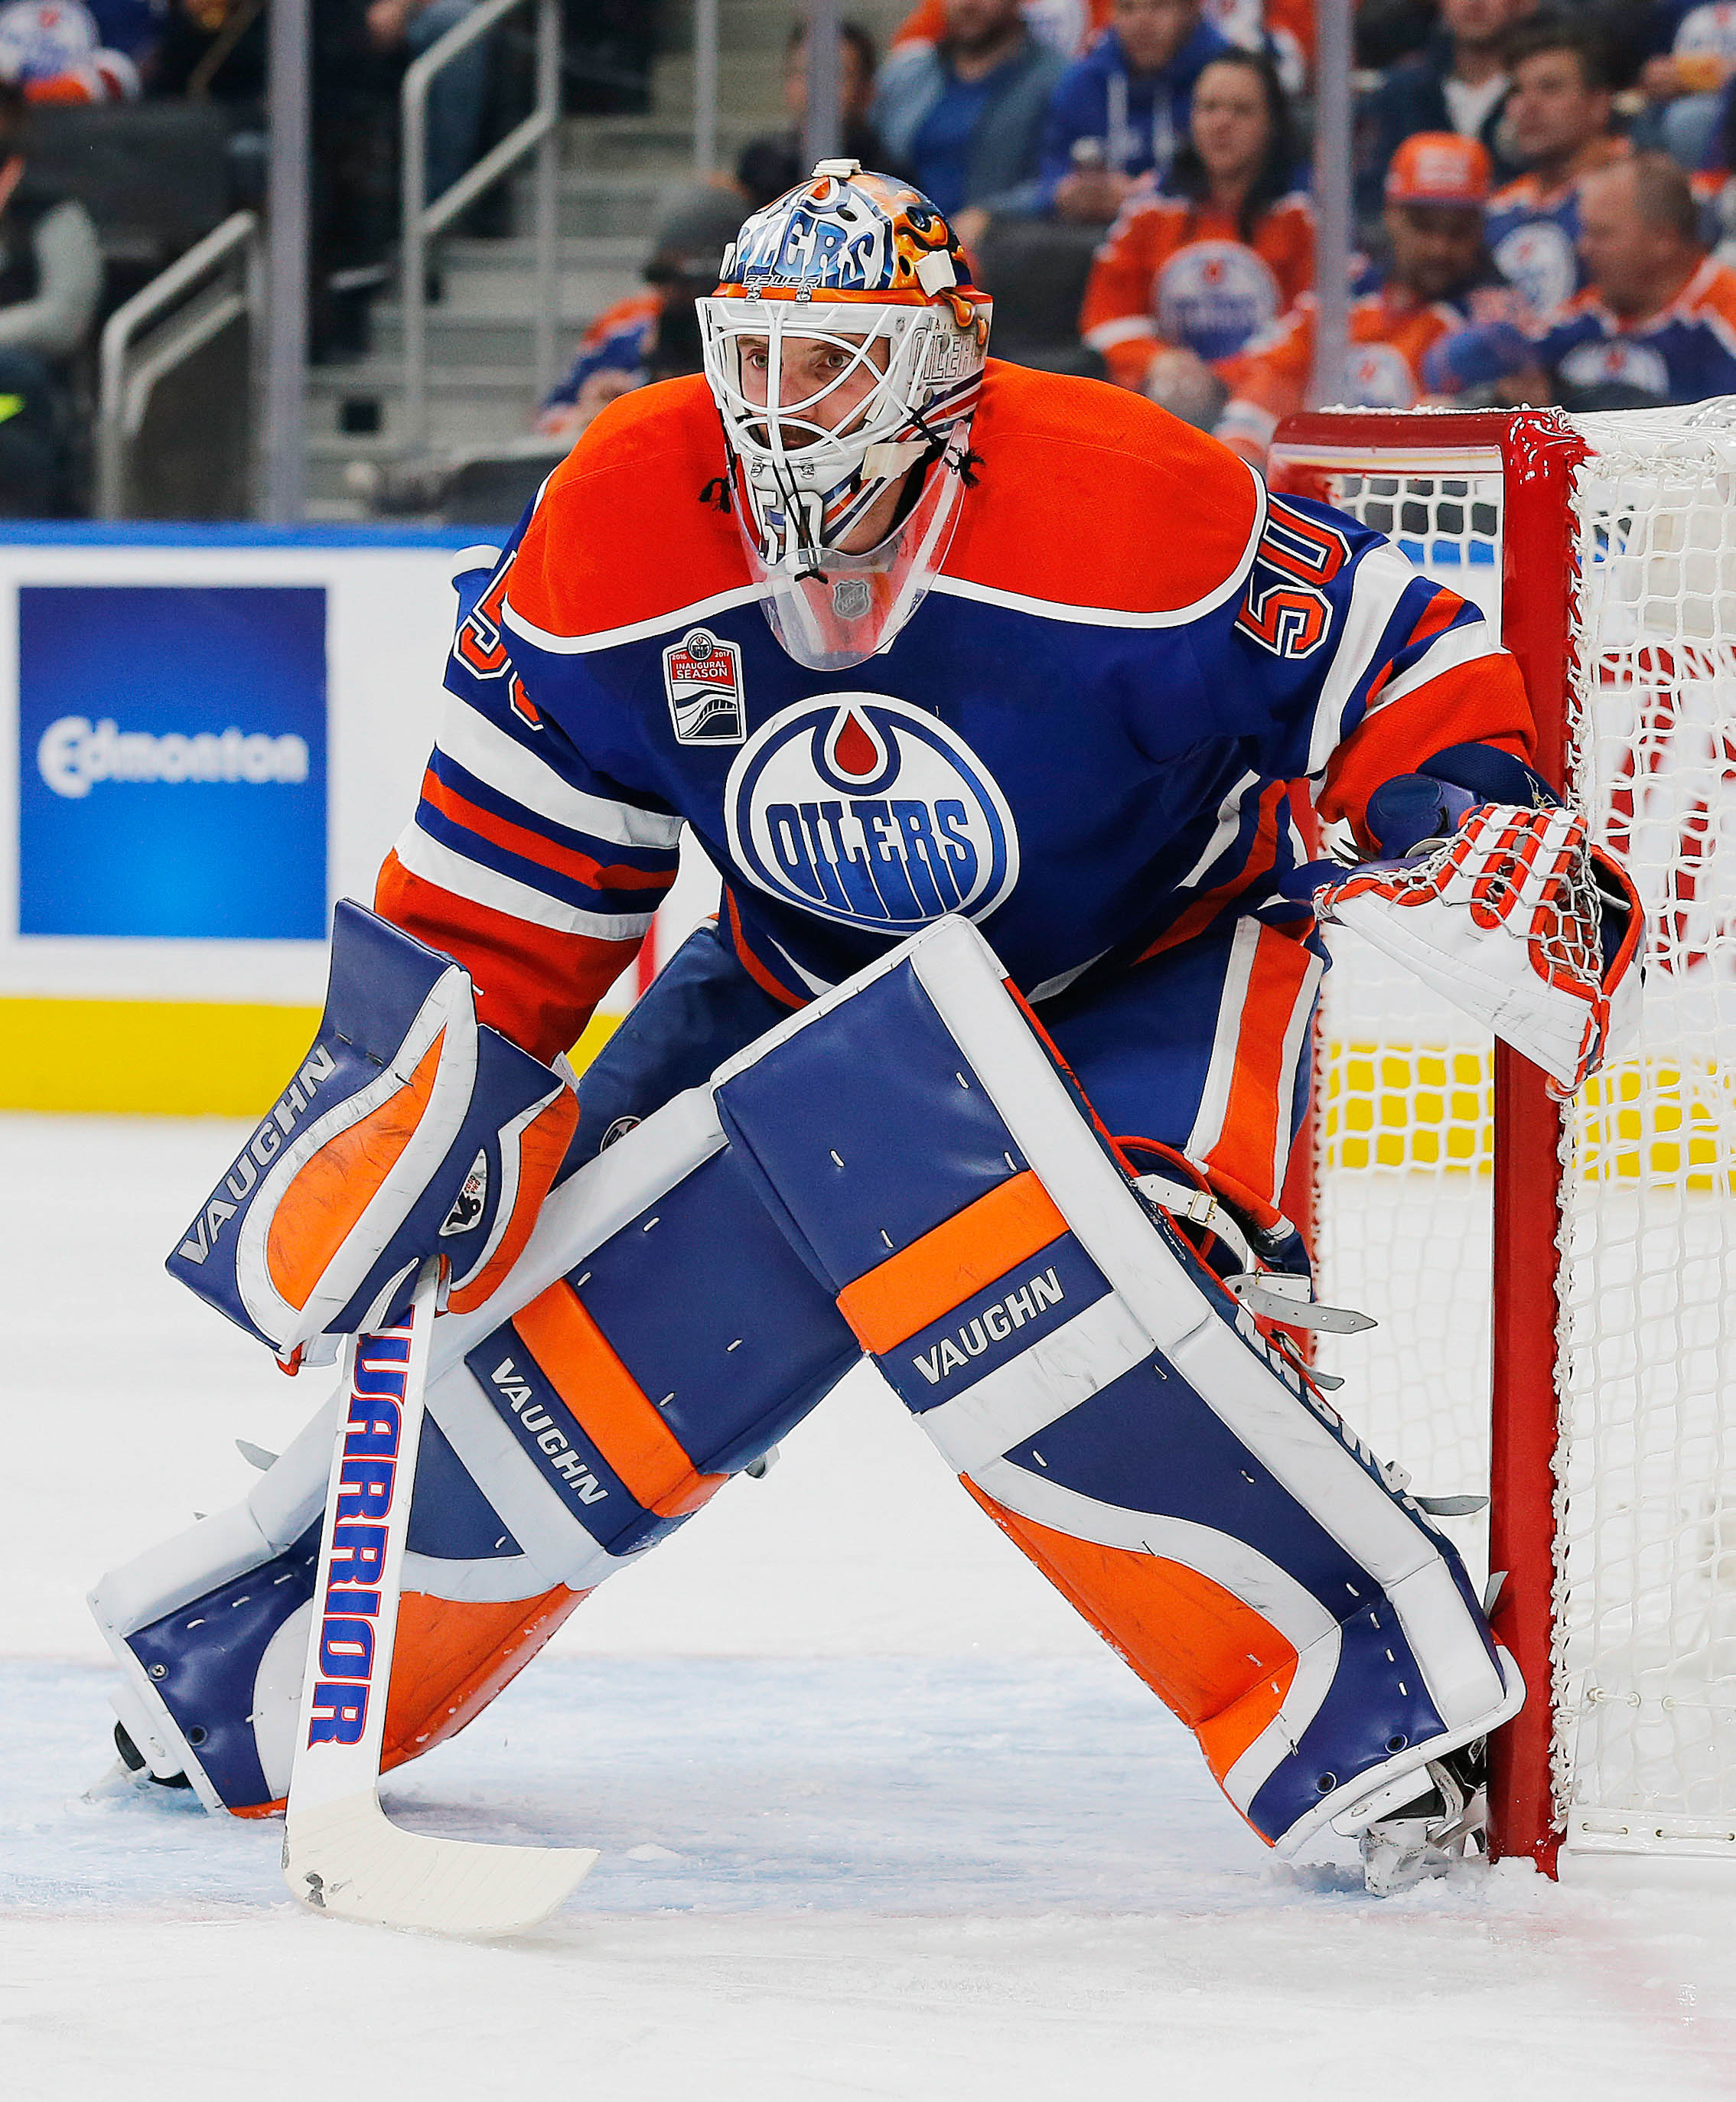 Barring anything wacky Jonas Gustavsson will likely make his first start for the Oilers today.